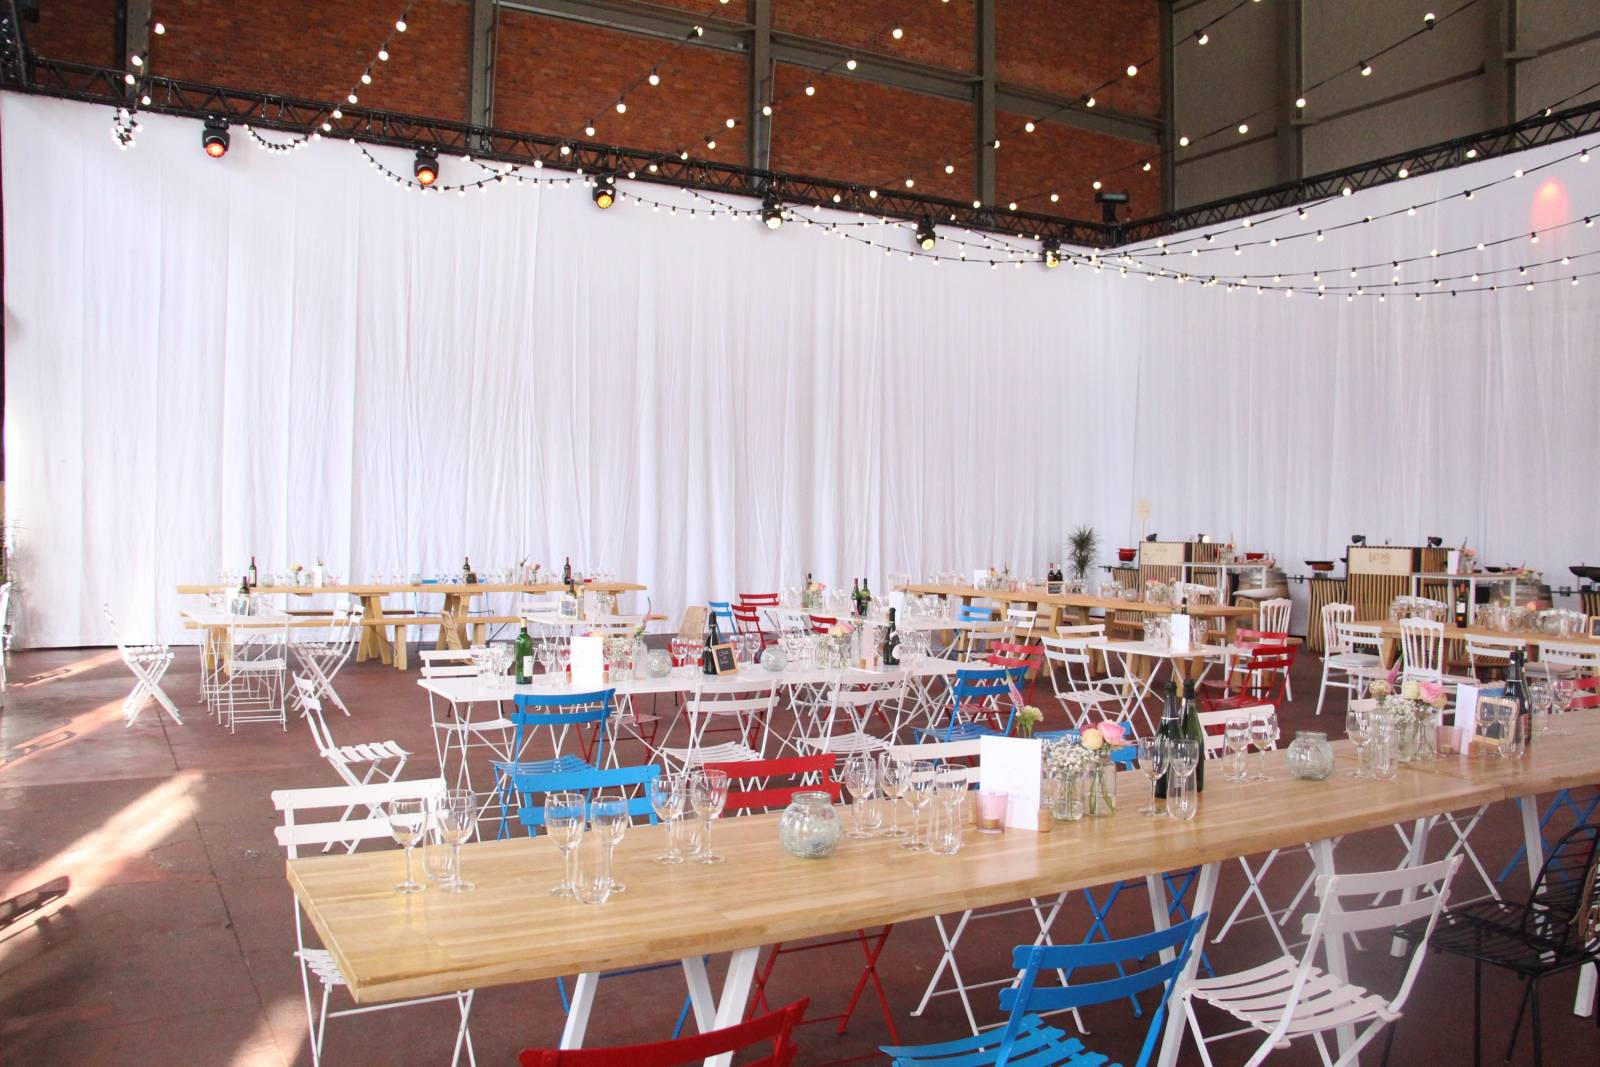 Hangar 43 - Feestzaal Oost-Vlaanderen - Industrieel - House of Weddings - 40